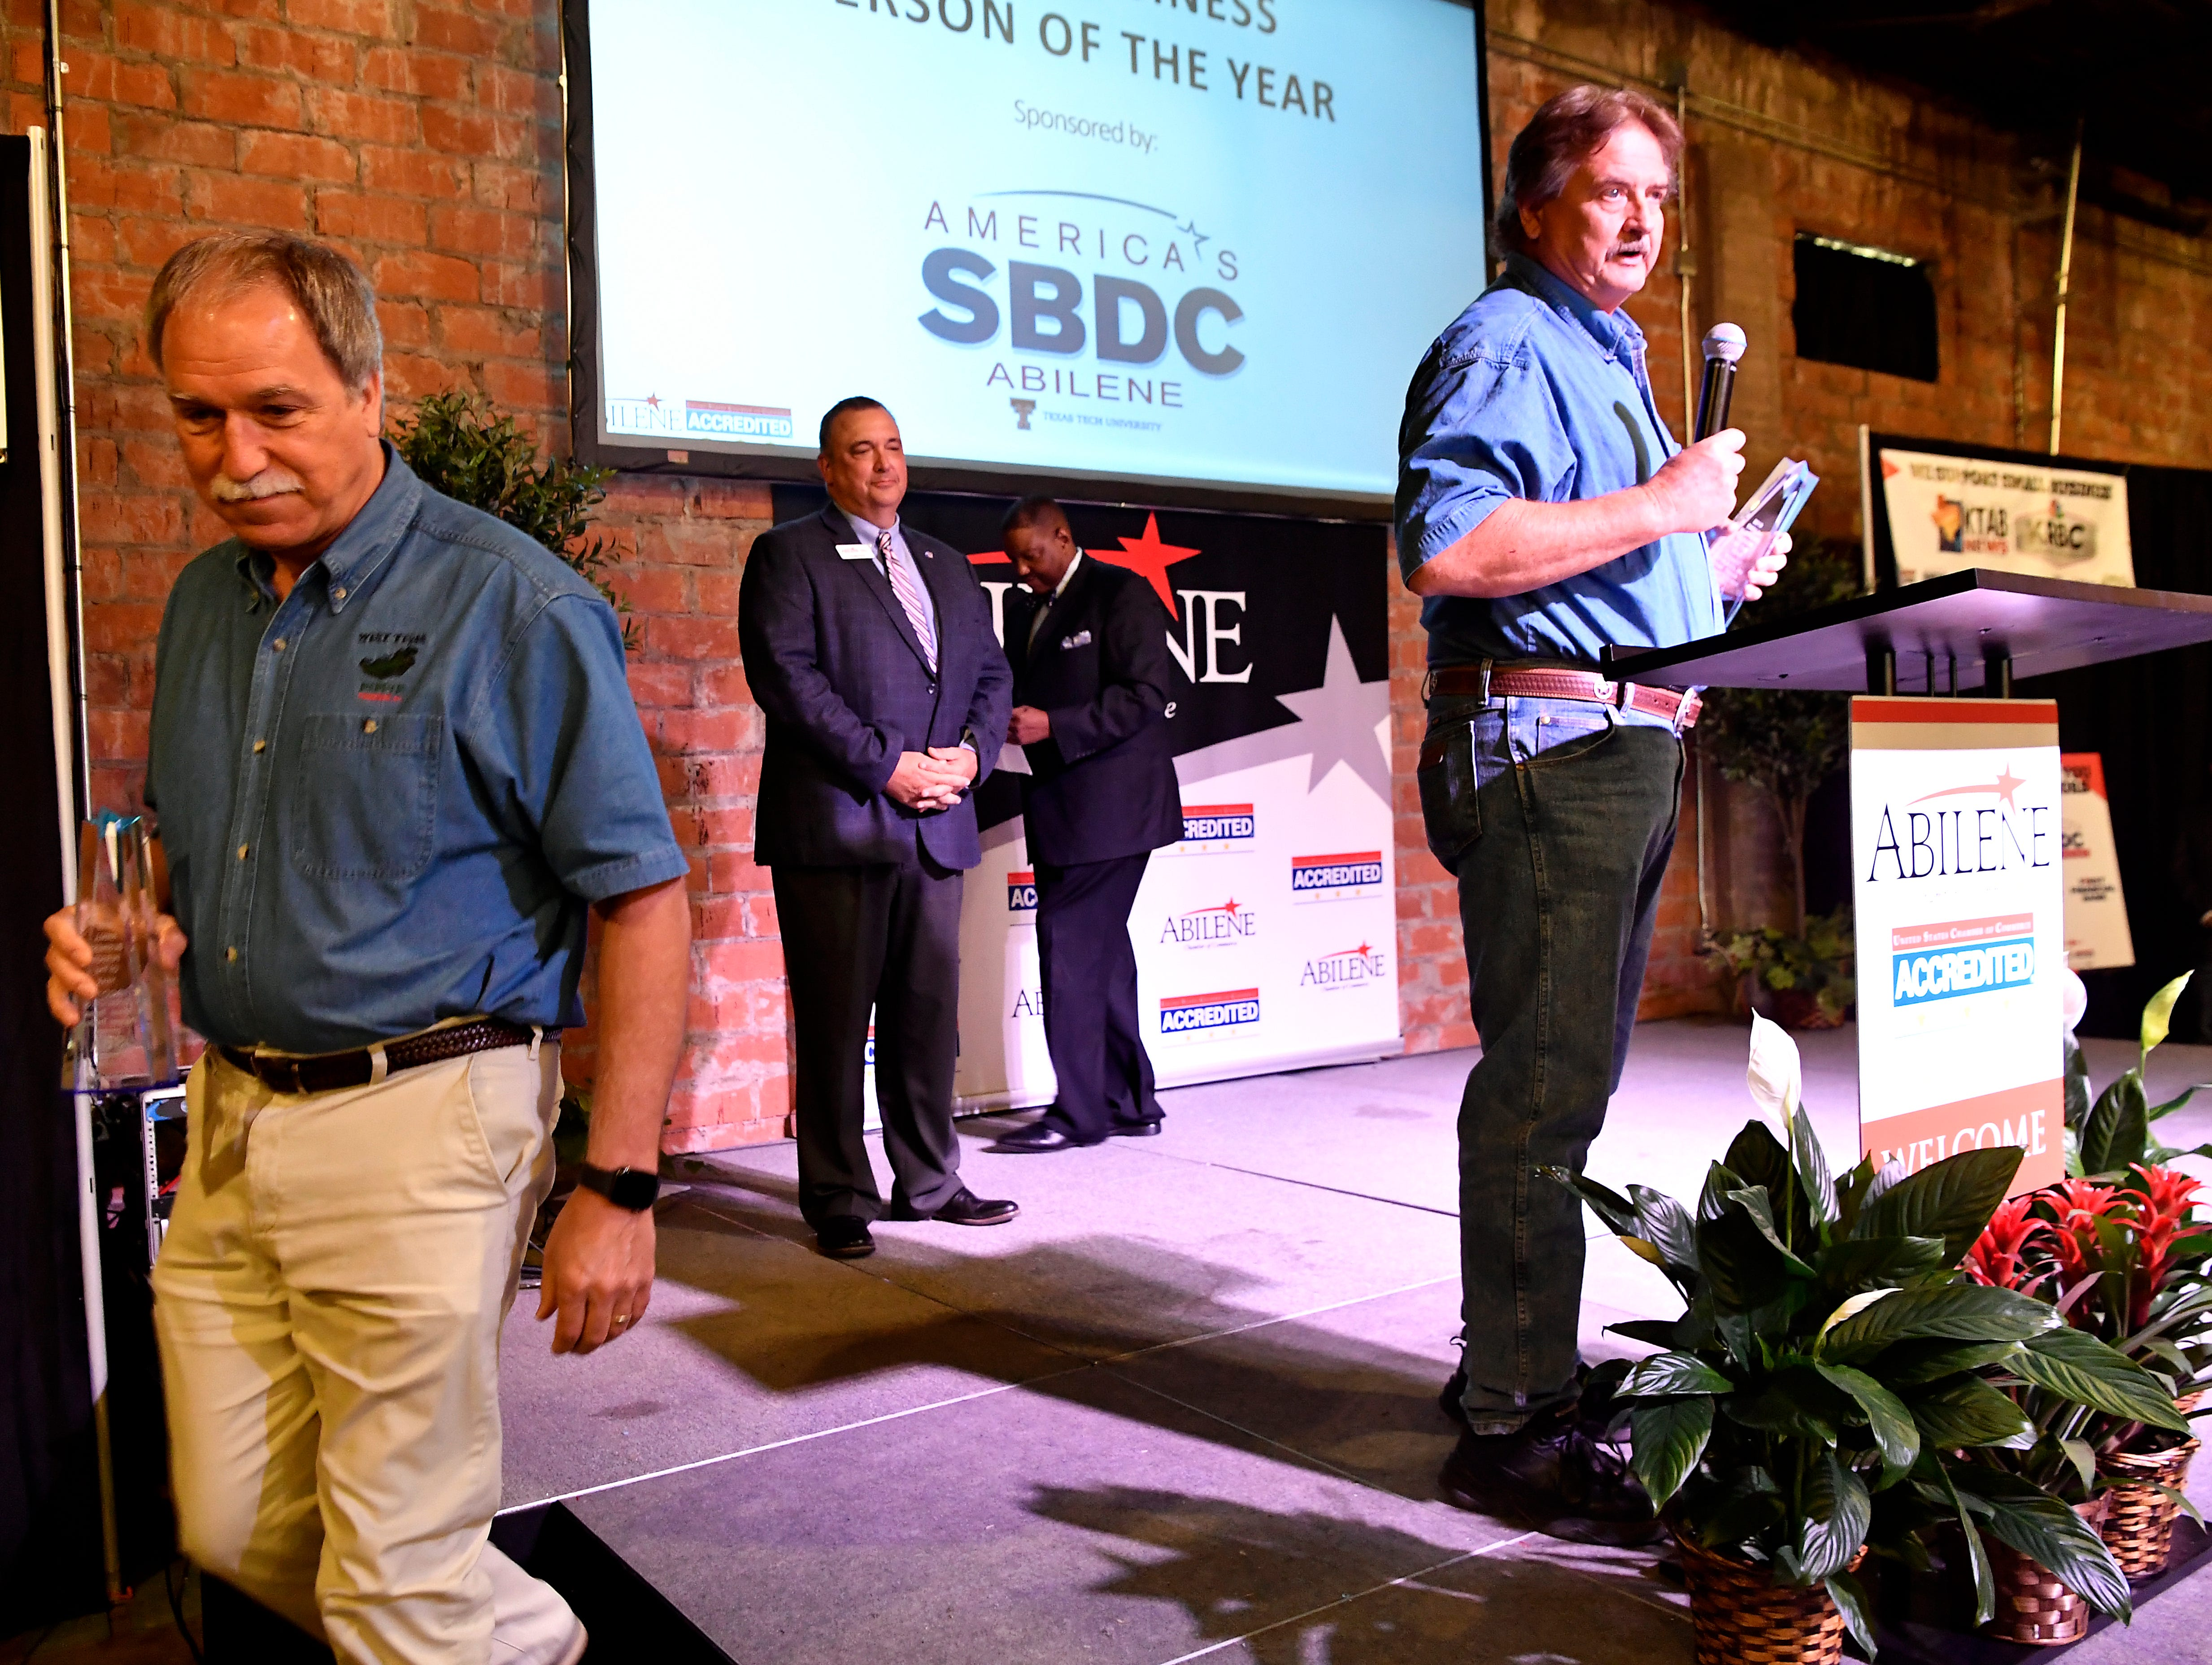 Scott Bridges expresses his thanks Tuesday after he and Tony Spradlin (left) were named Small Business Persons of the Year at Tuesday's Salute to Small Business luncheon at 201 Mesquite Event Center. The duo own West Texas Pepper Traders.